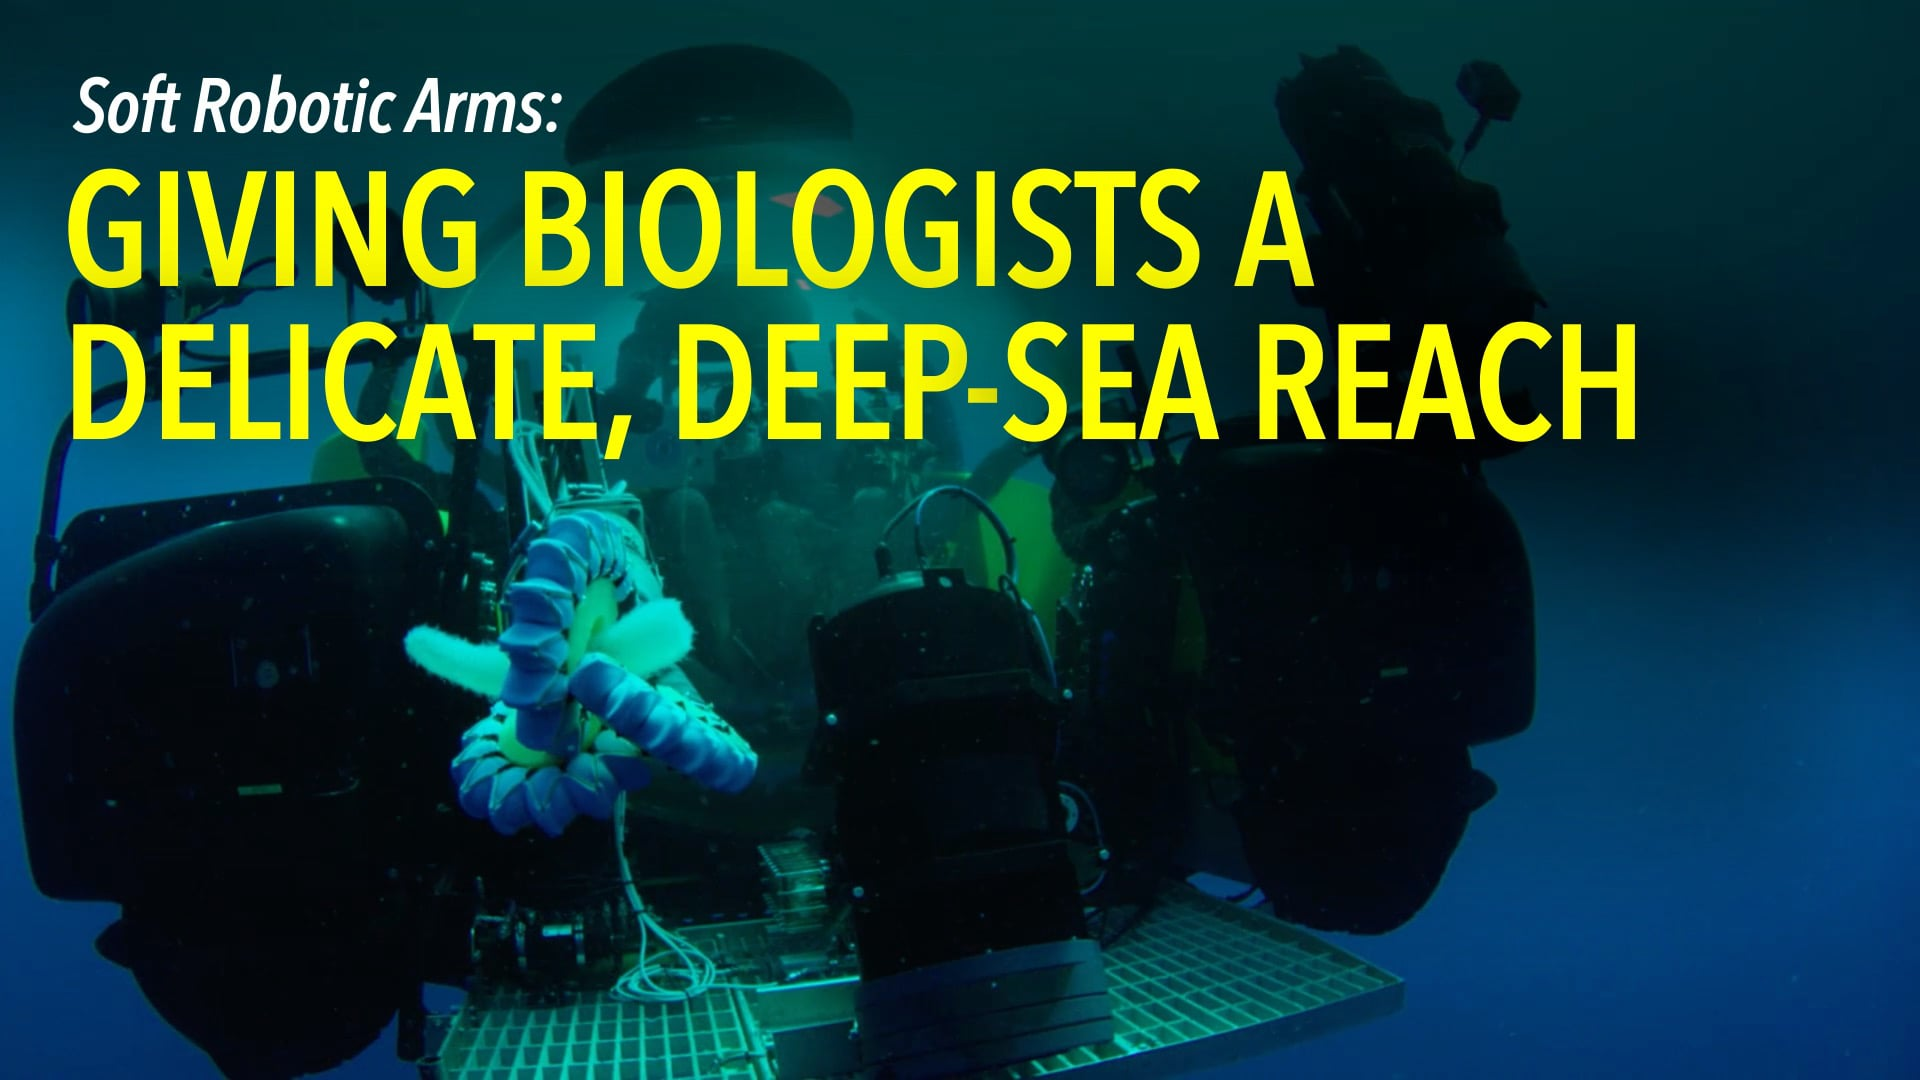 Soft Robotic Arms: Giving Biologists a Delicate, Deep-sea Reach